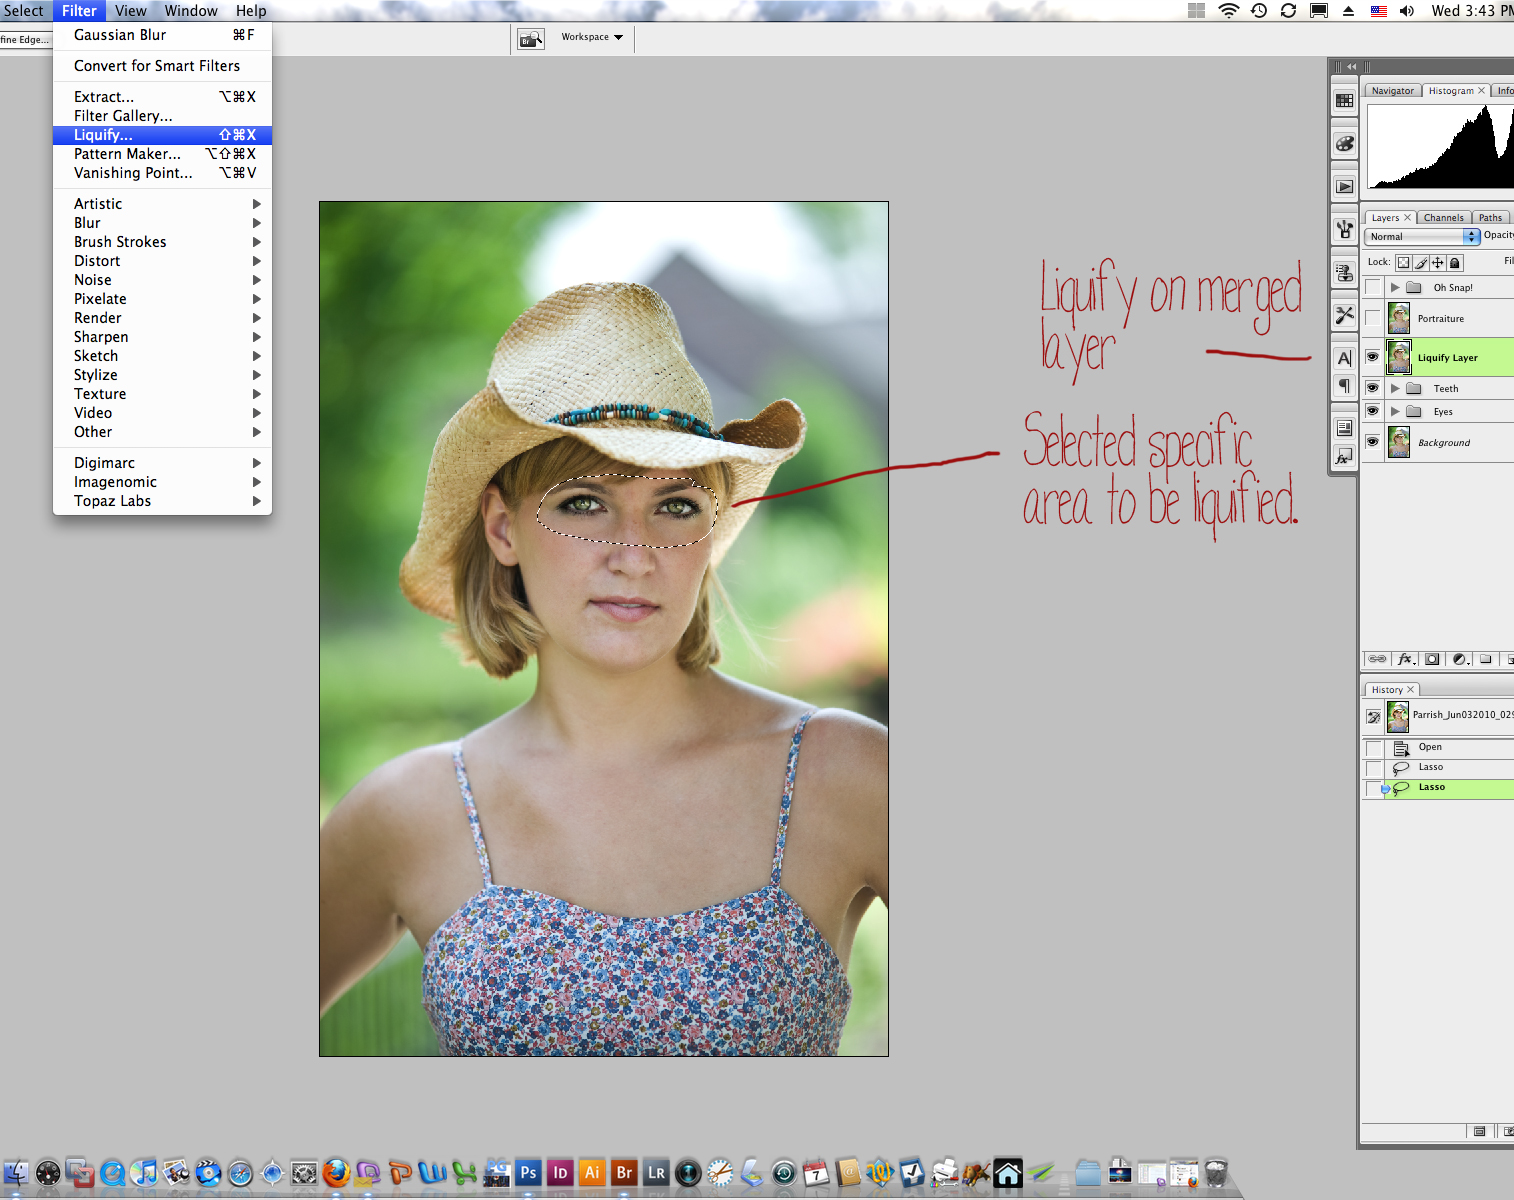 10-Liquify-Prep Digital Workflow Using Photoshop and Adobe Camera Raw and Bridge Guest Bloggers Photoshop Tips & Tutorials